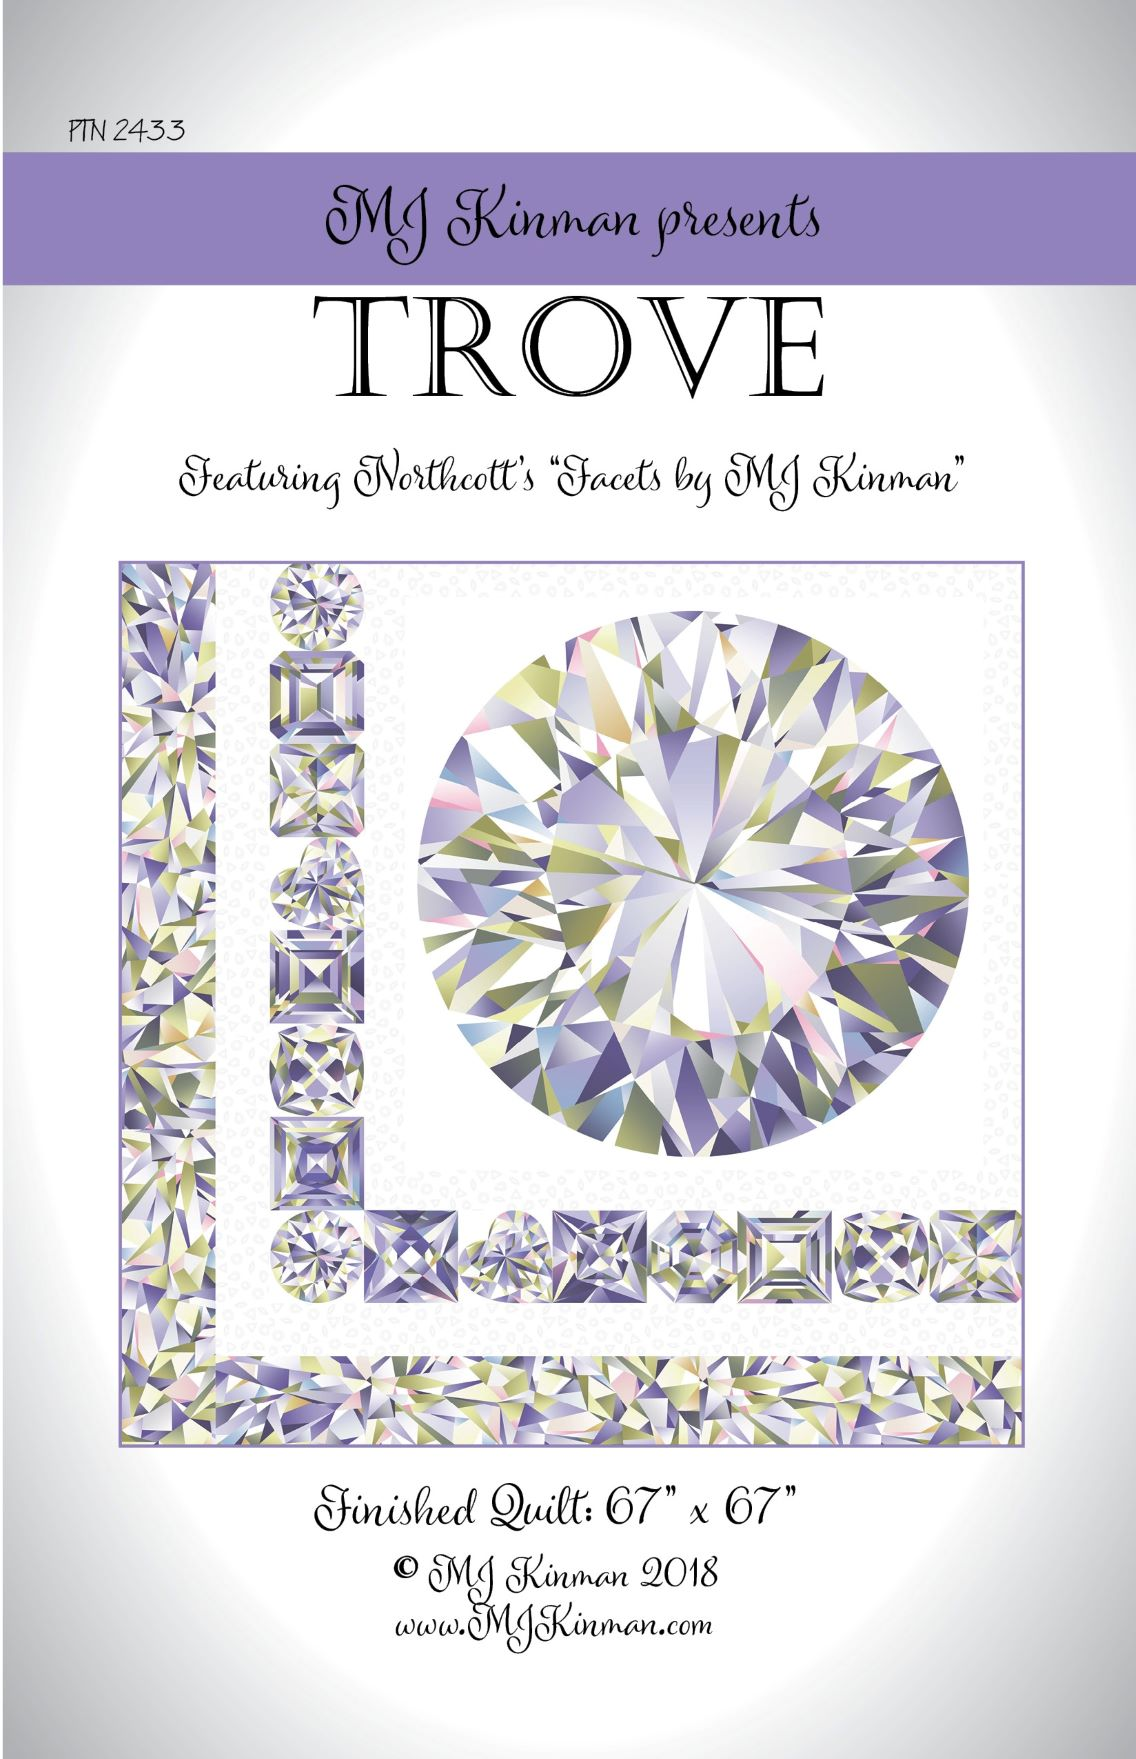 Trove_Pattern Cover ONLY2 12192018 Resize for Emails.jpg